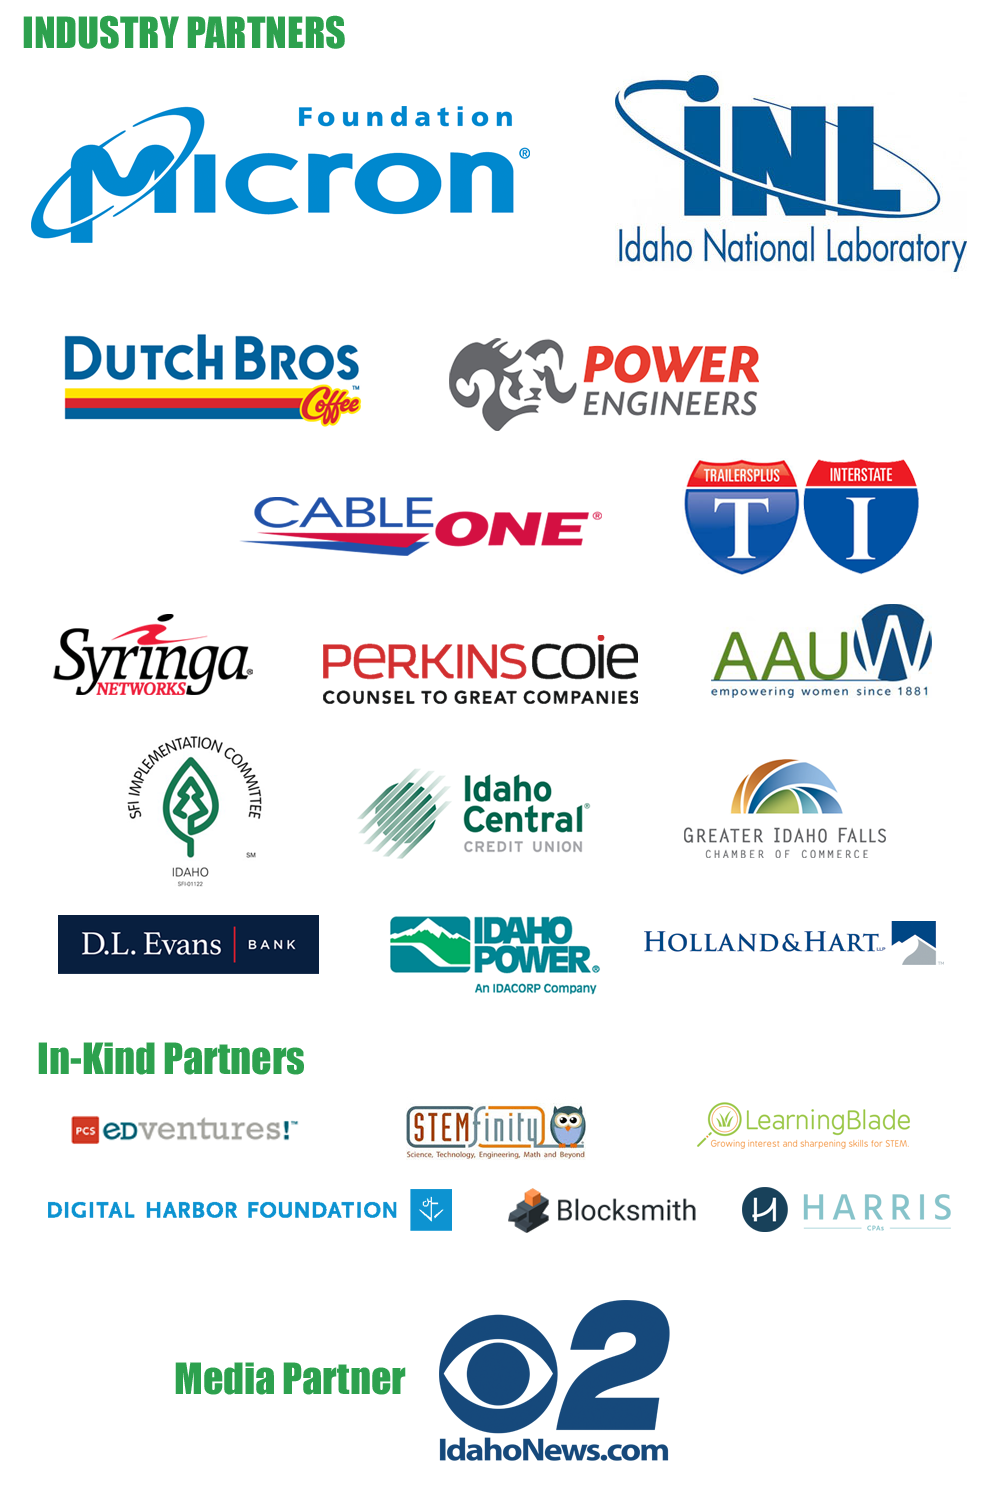 STEM AC Industry Partners